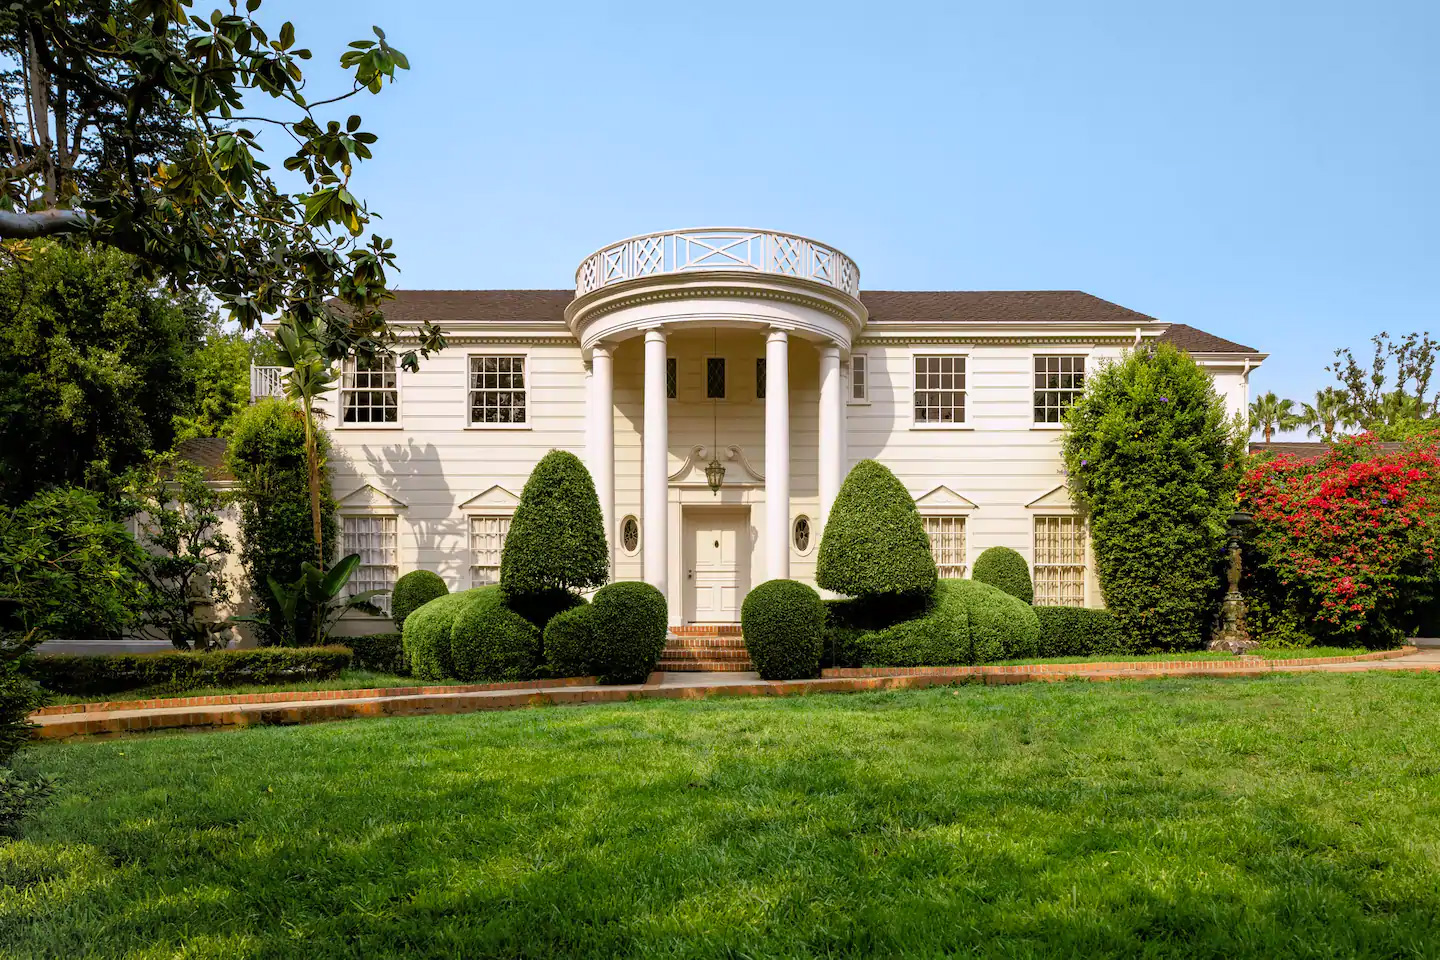 Book Your Stay at the Fresh Prince of Bel-Air Mansion at werd.com